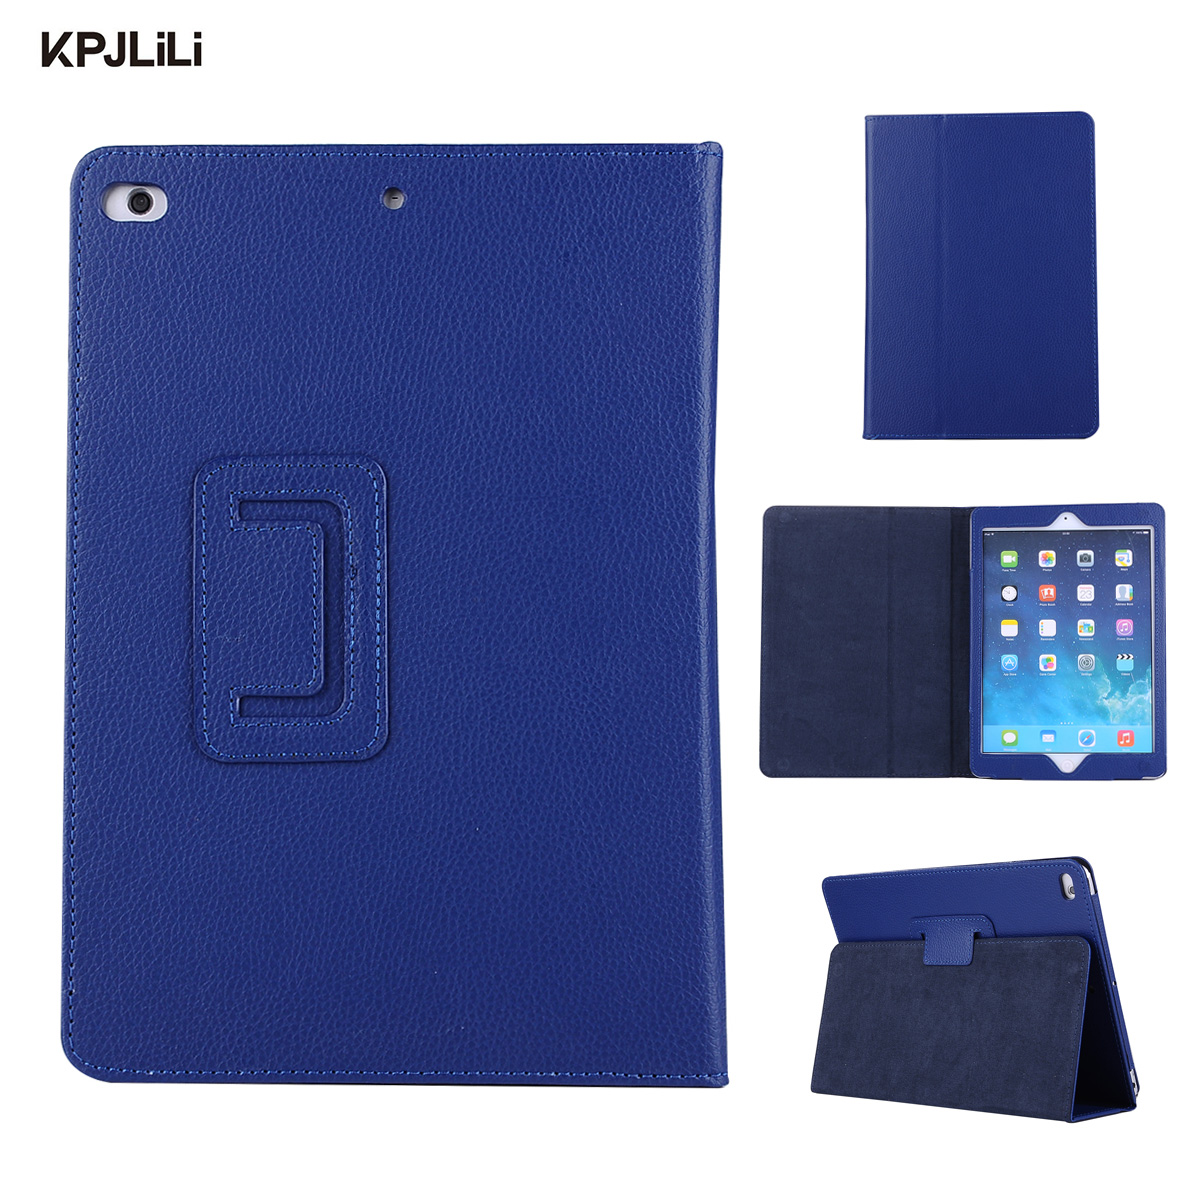 Premium PU Leather Folded Tablet Case for iPad 9 7 New 2017 Smart Cover for iPad